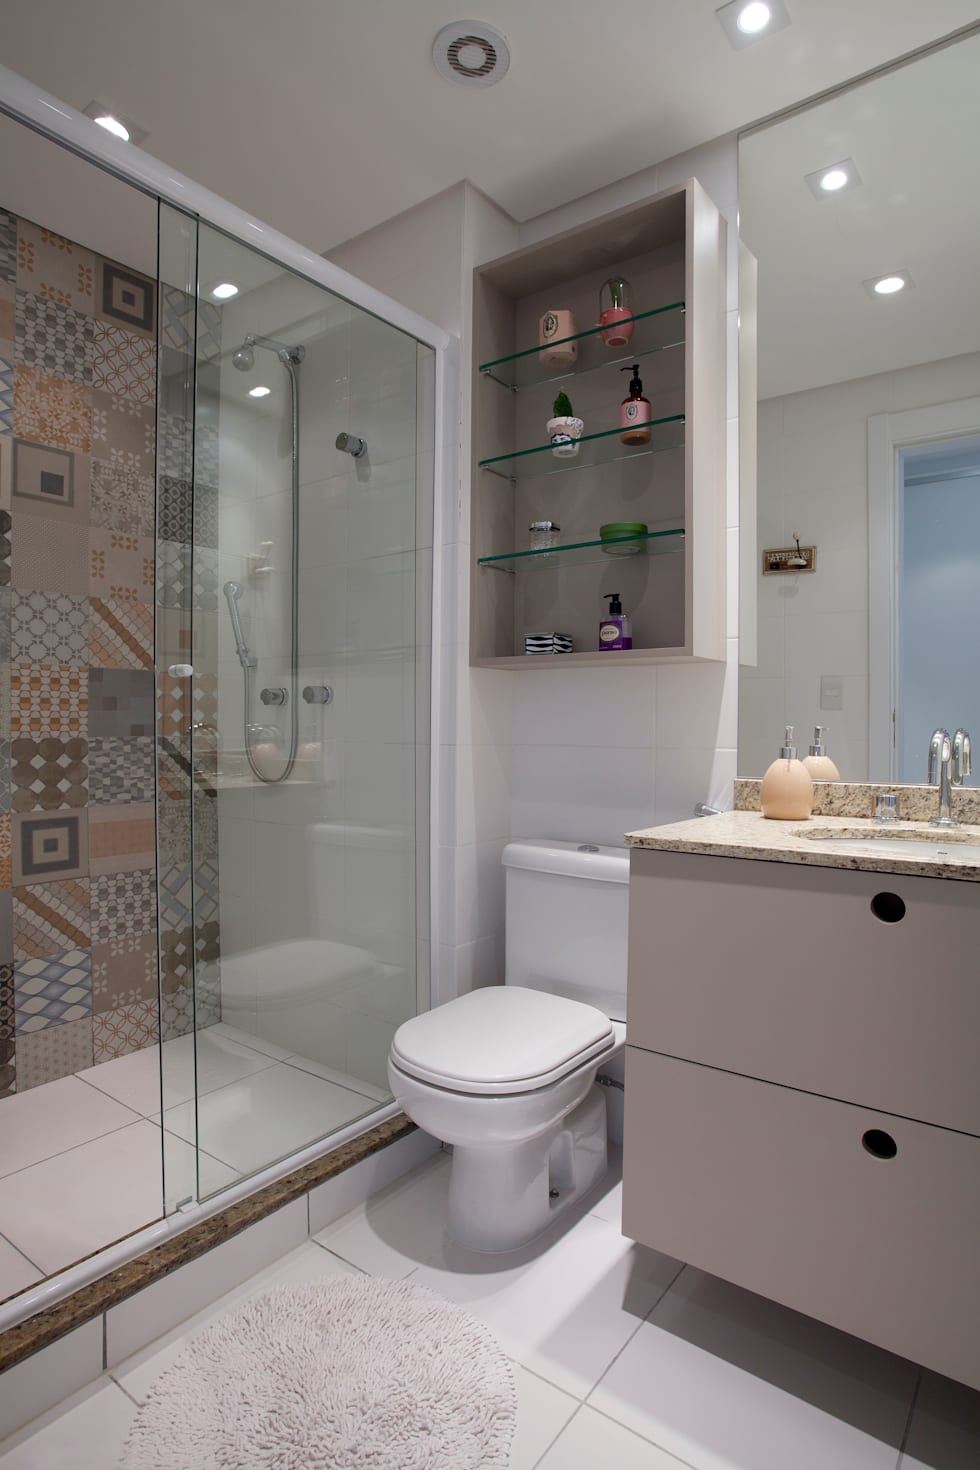 10 small bathrooms that you can recreate at home (for very little money!)